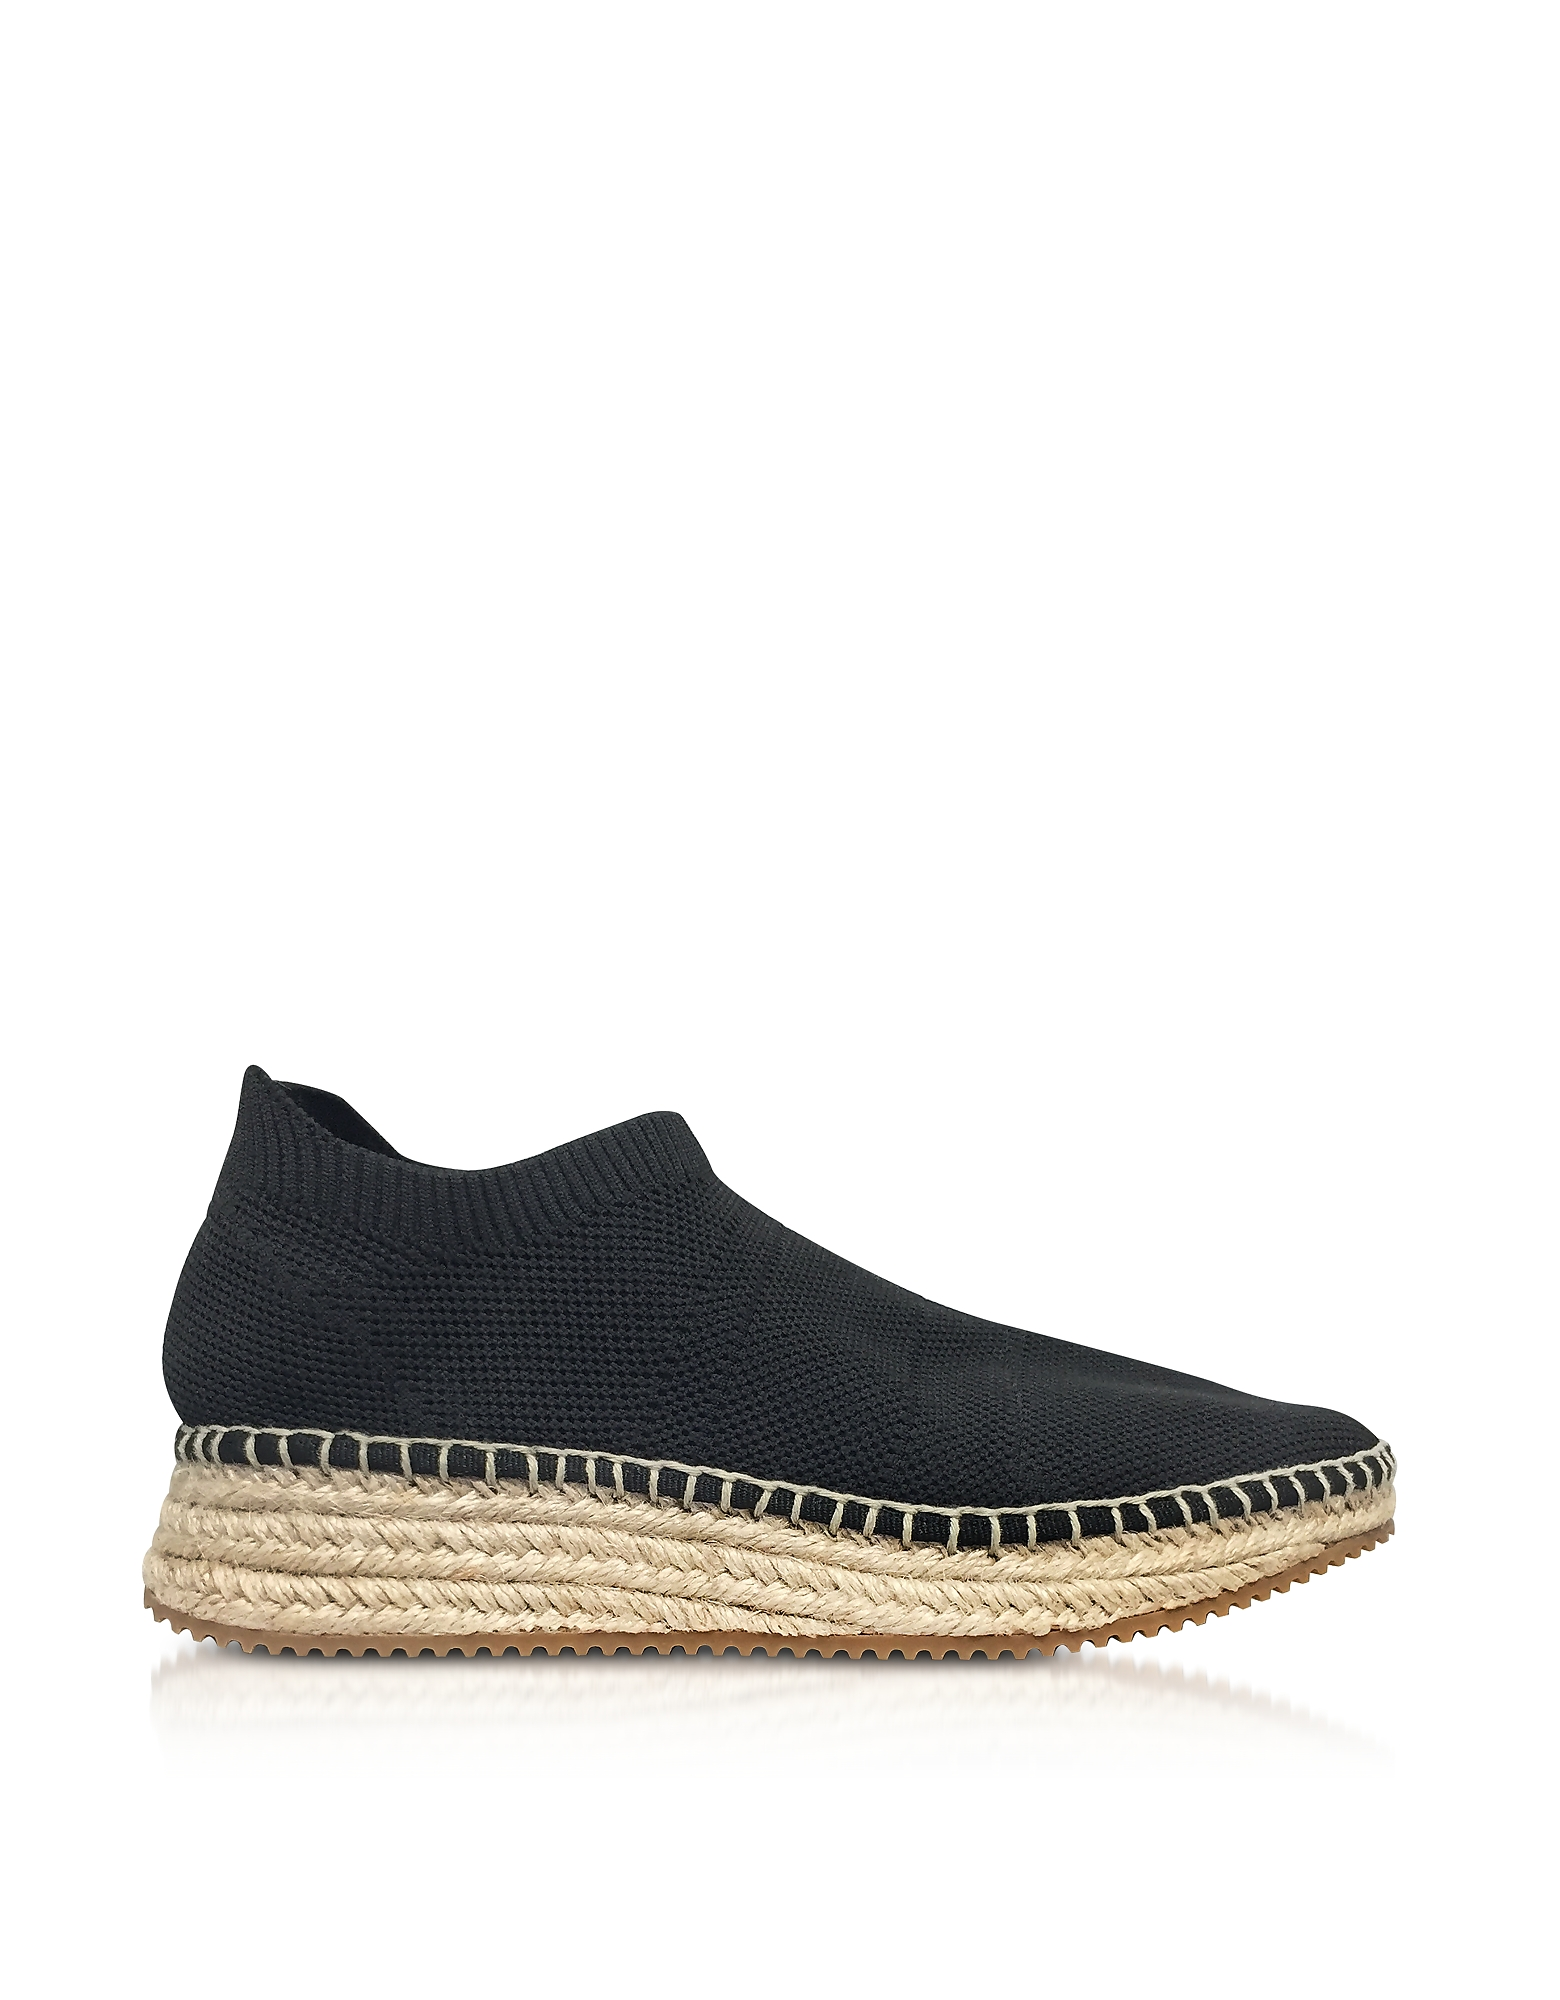 Alexander Wang Shoes, Dylan Black Knit Low Top Sneakers w/Jute Sole